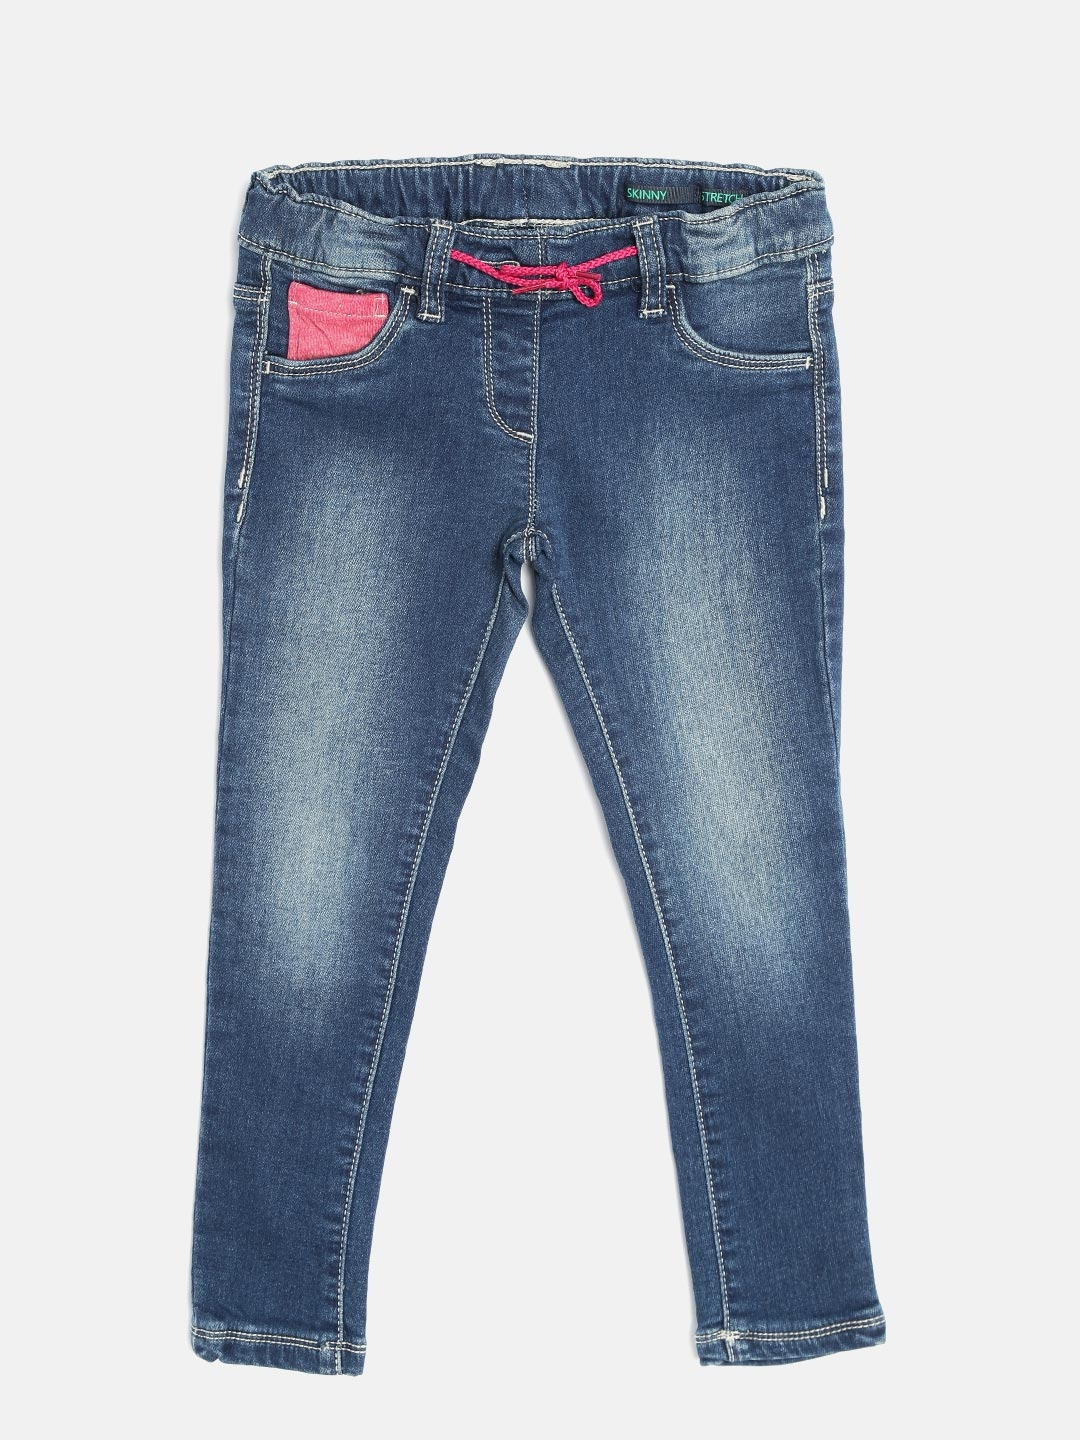 United Colors of Benetton Girls Navy Skinny Fit Stretchable Jeans